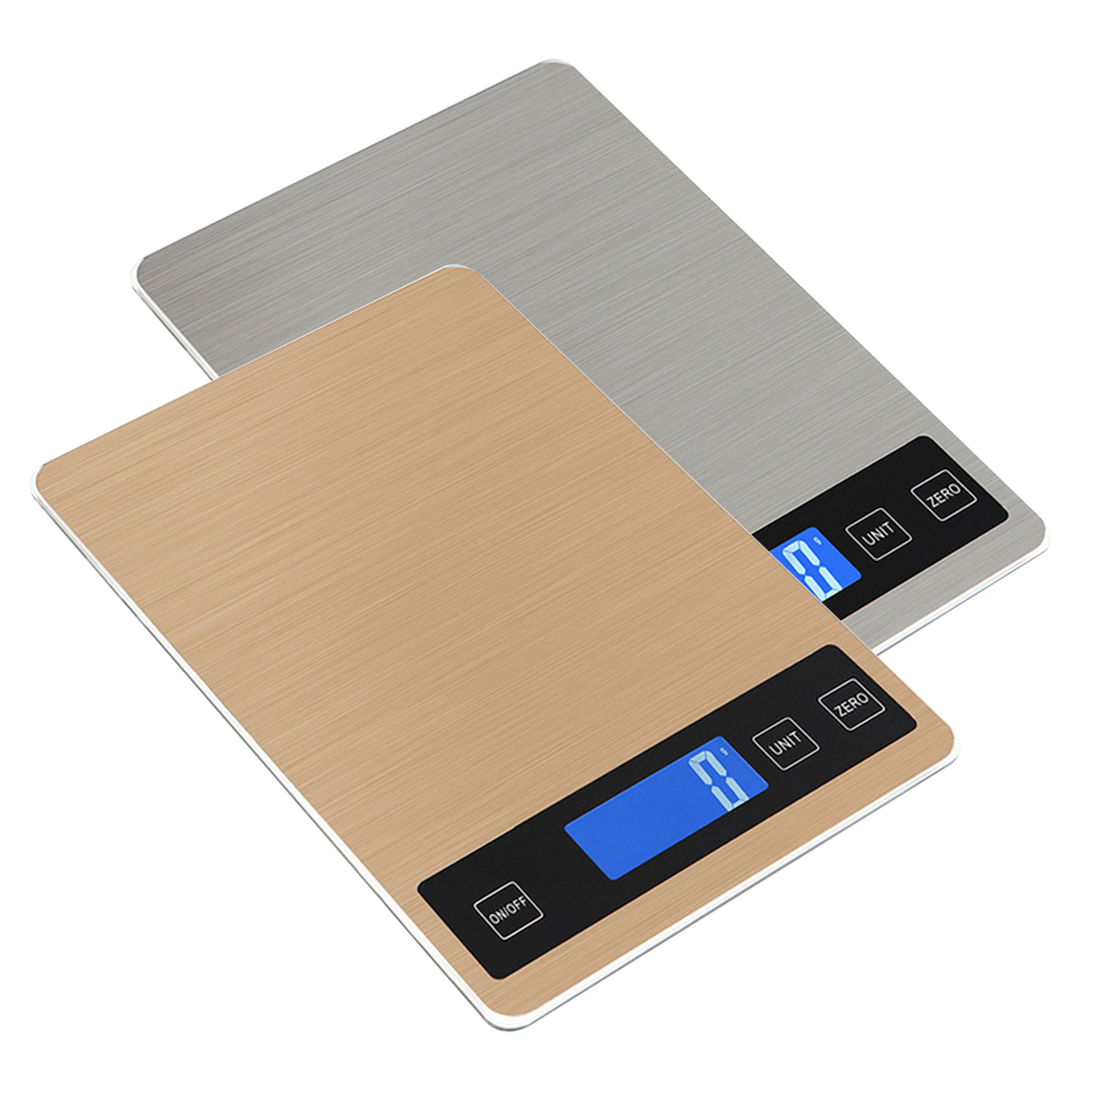 1kg/2kg/5kg 0.1g/1g Electronic Kitchen Scale Digital Food Scale Jewelry Scale Weighing Scale LCD High Precision Measuring Tools